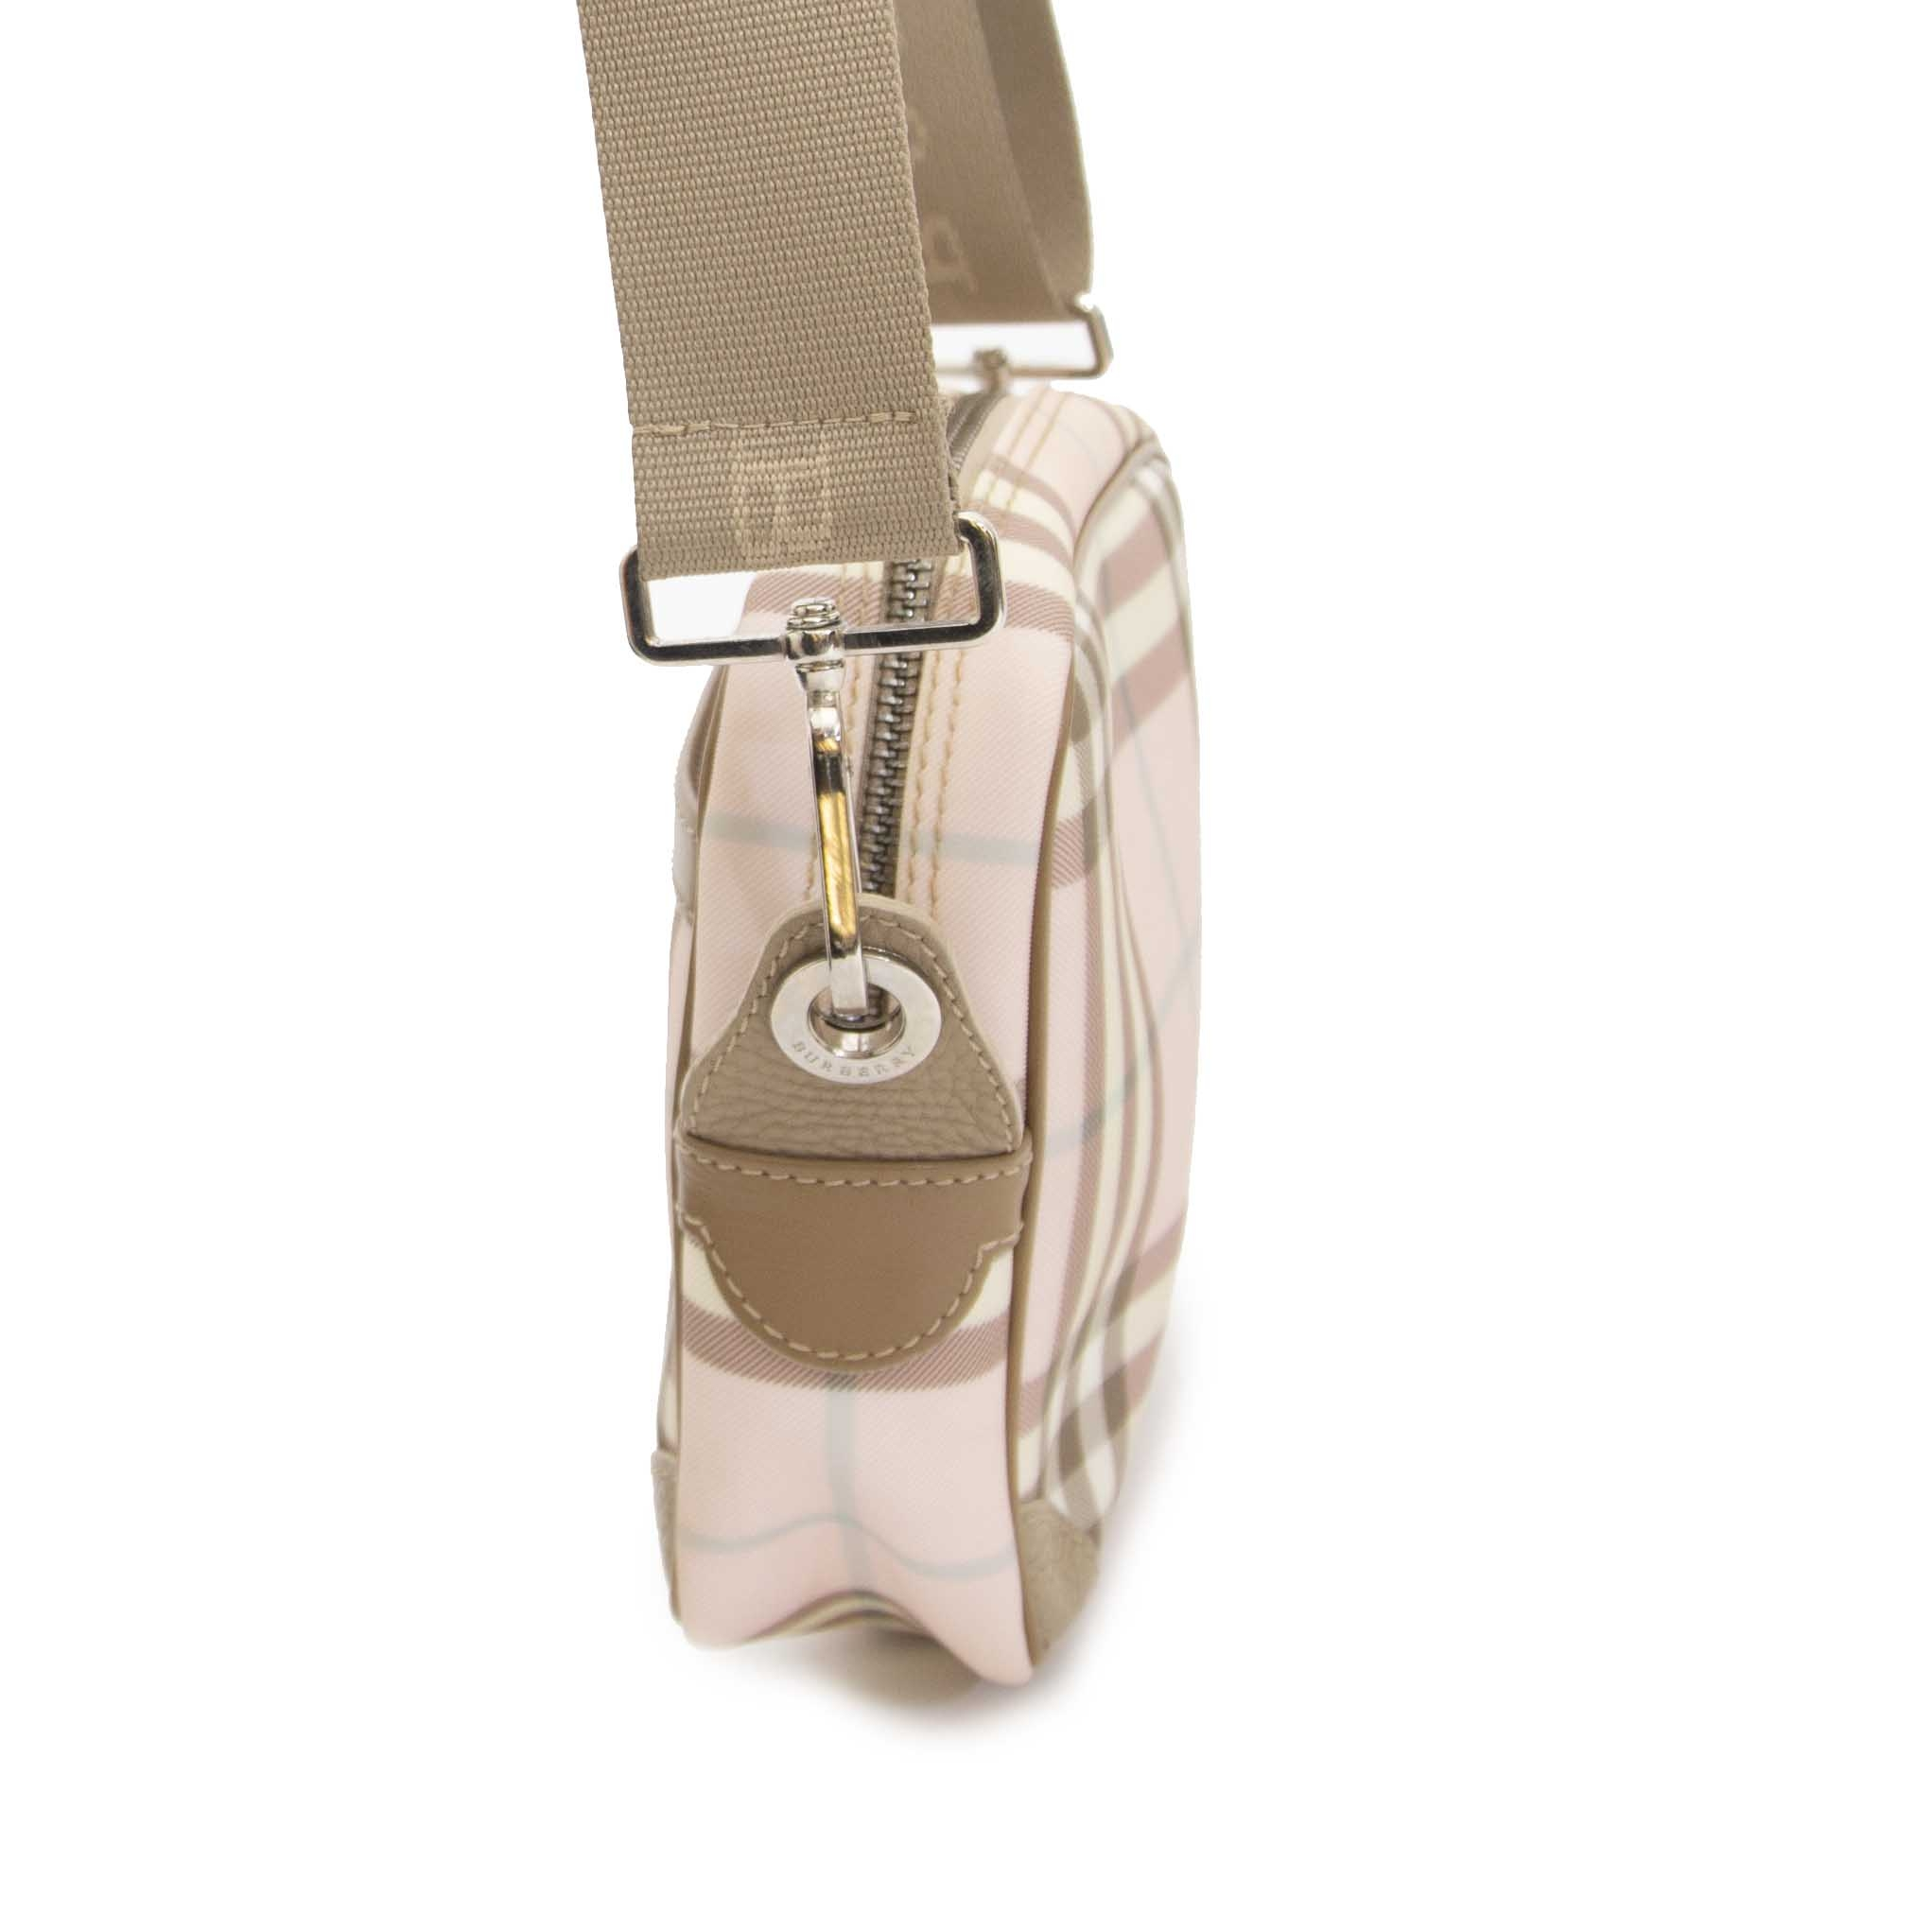 acheter en ligne seconde main Burberry Mini Pink Check Crossbody Bag